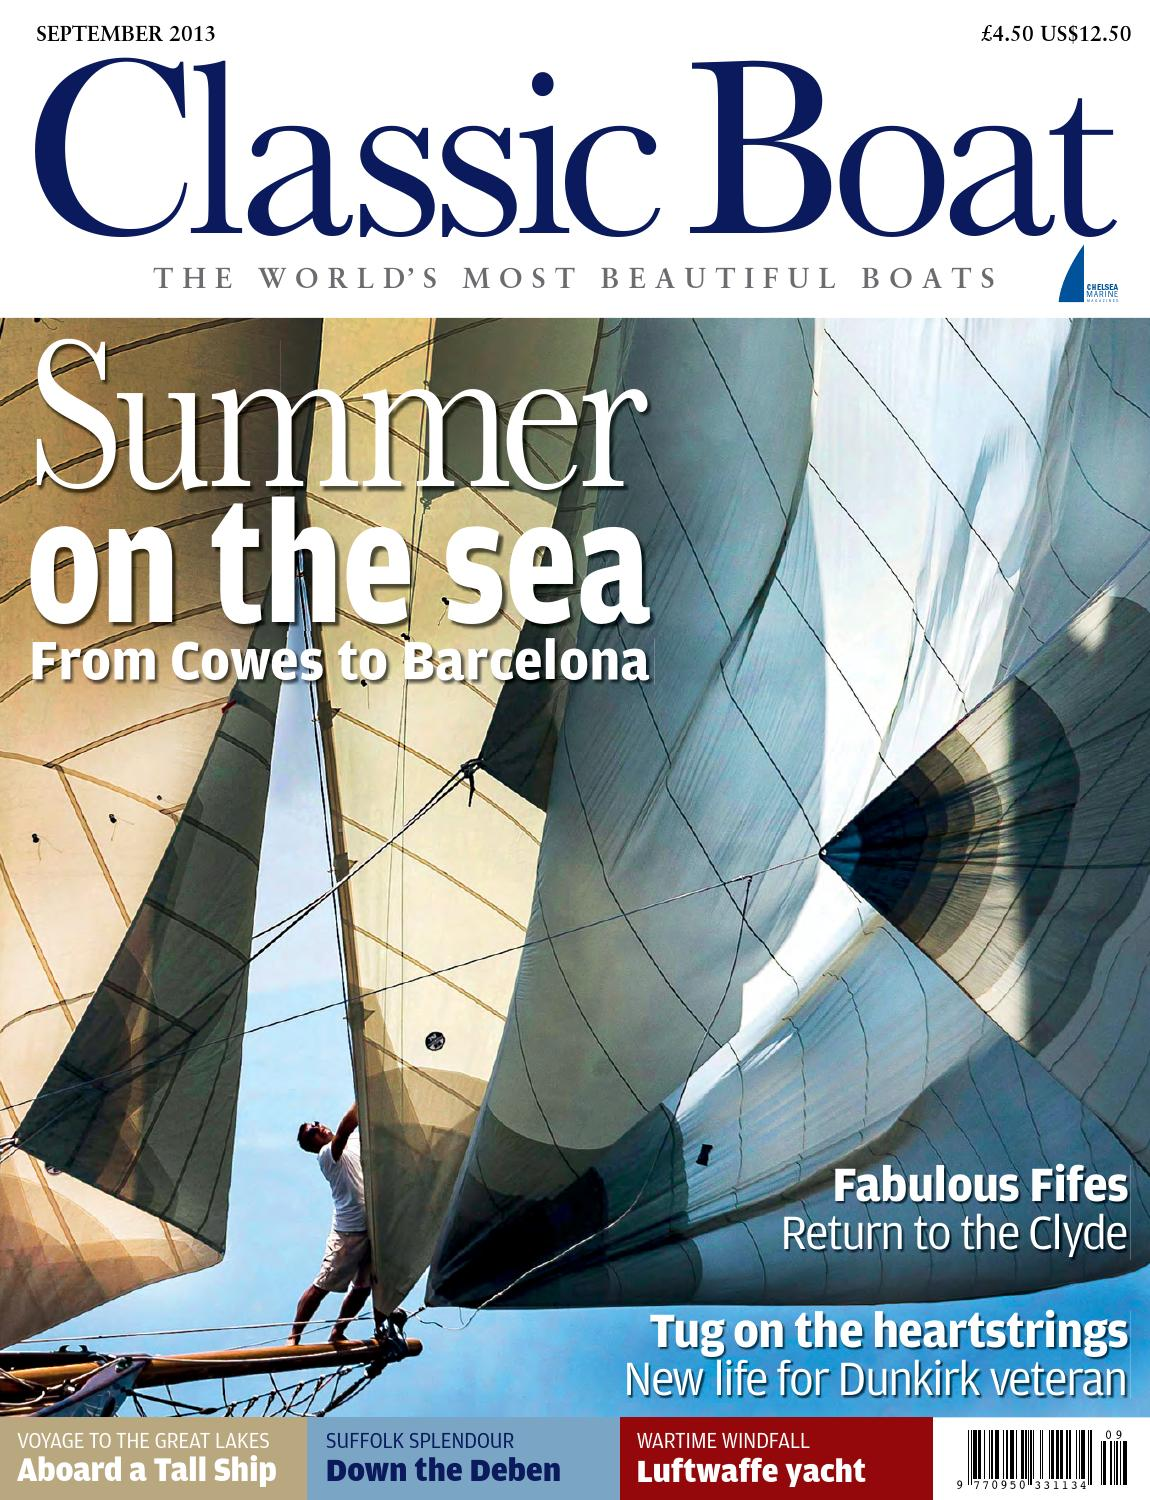 Classic Boat September 2013 by The Chelsea Magazine Company - issuu